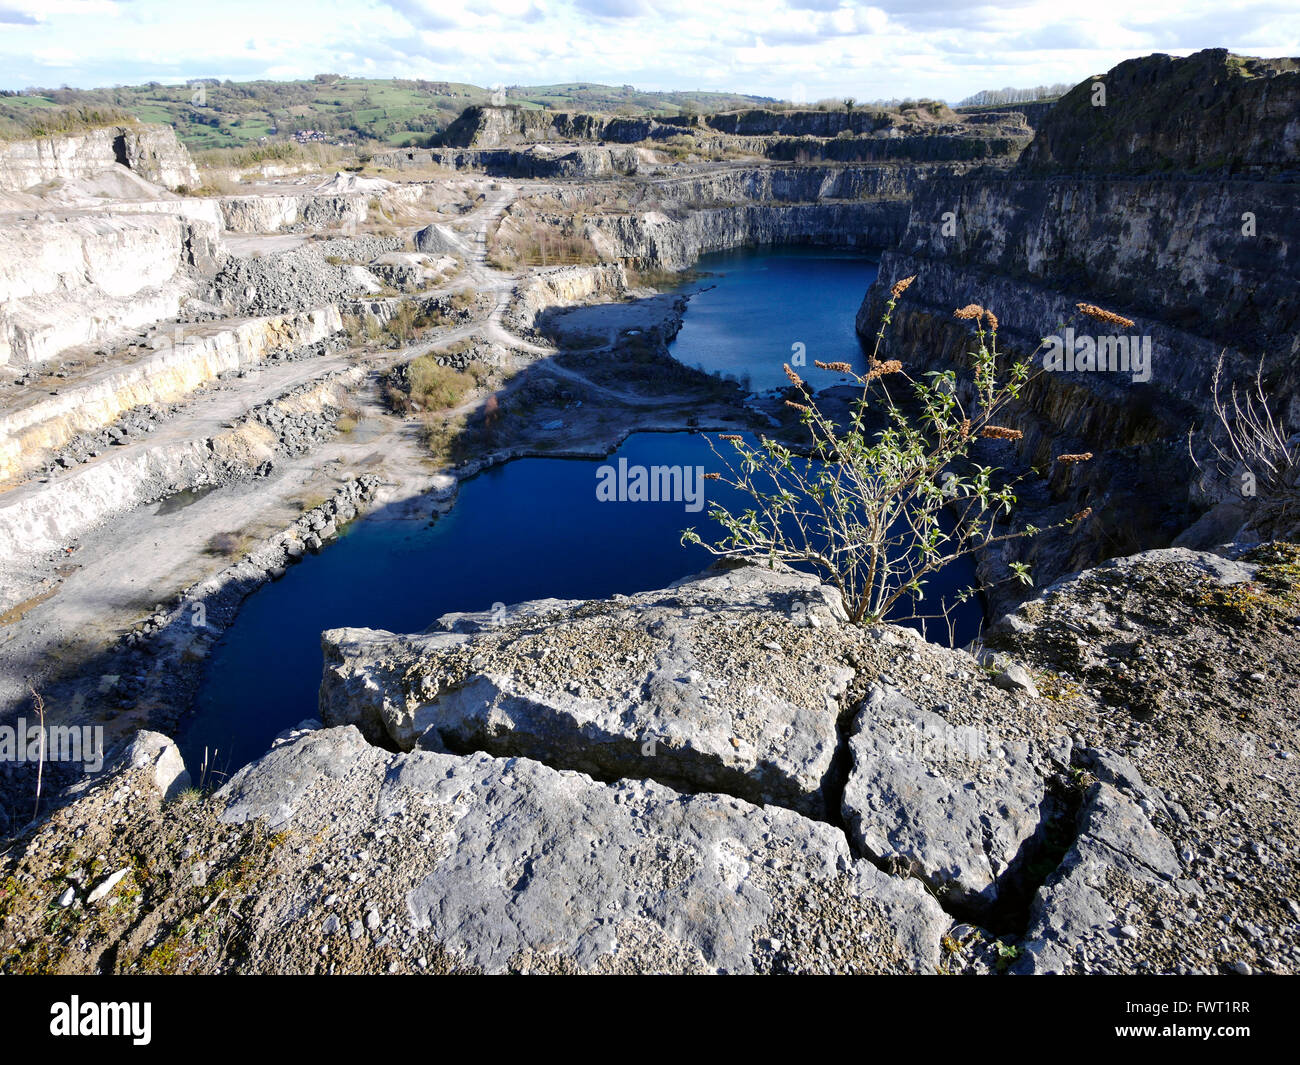 limestone quarry at Wirksworth Cromford village town Peak District National Park, Derbyshire planning application - Stock Image